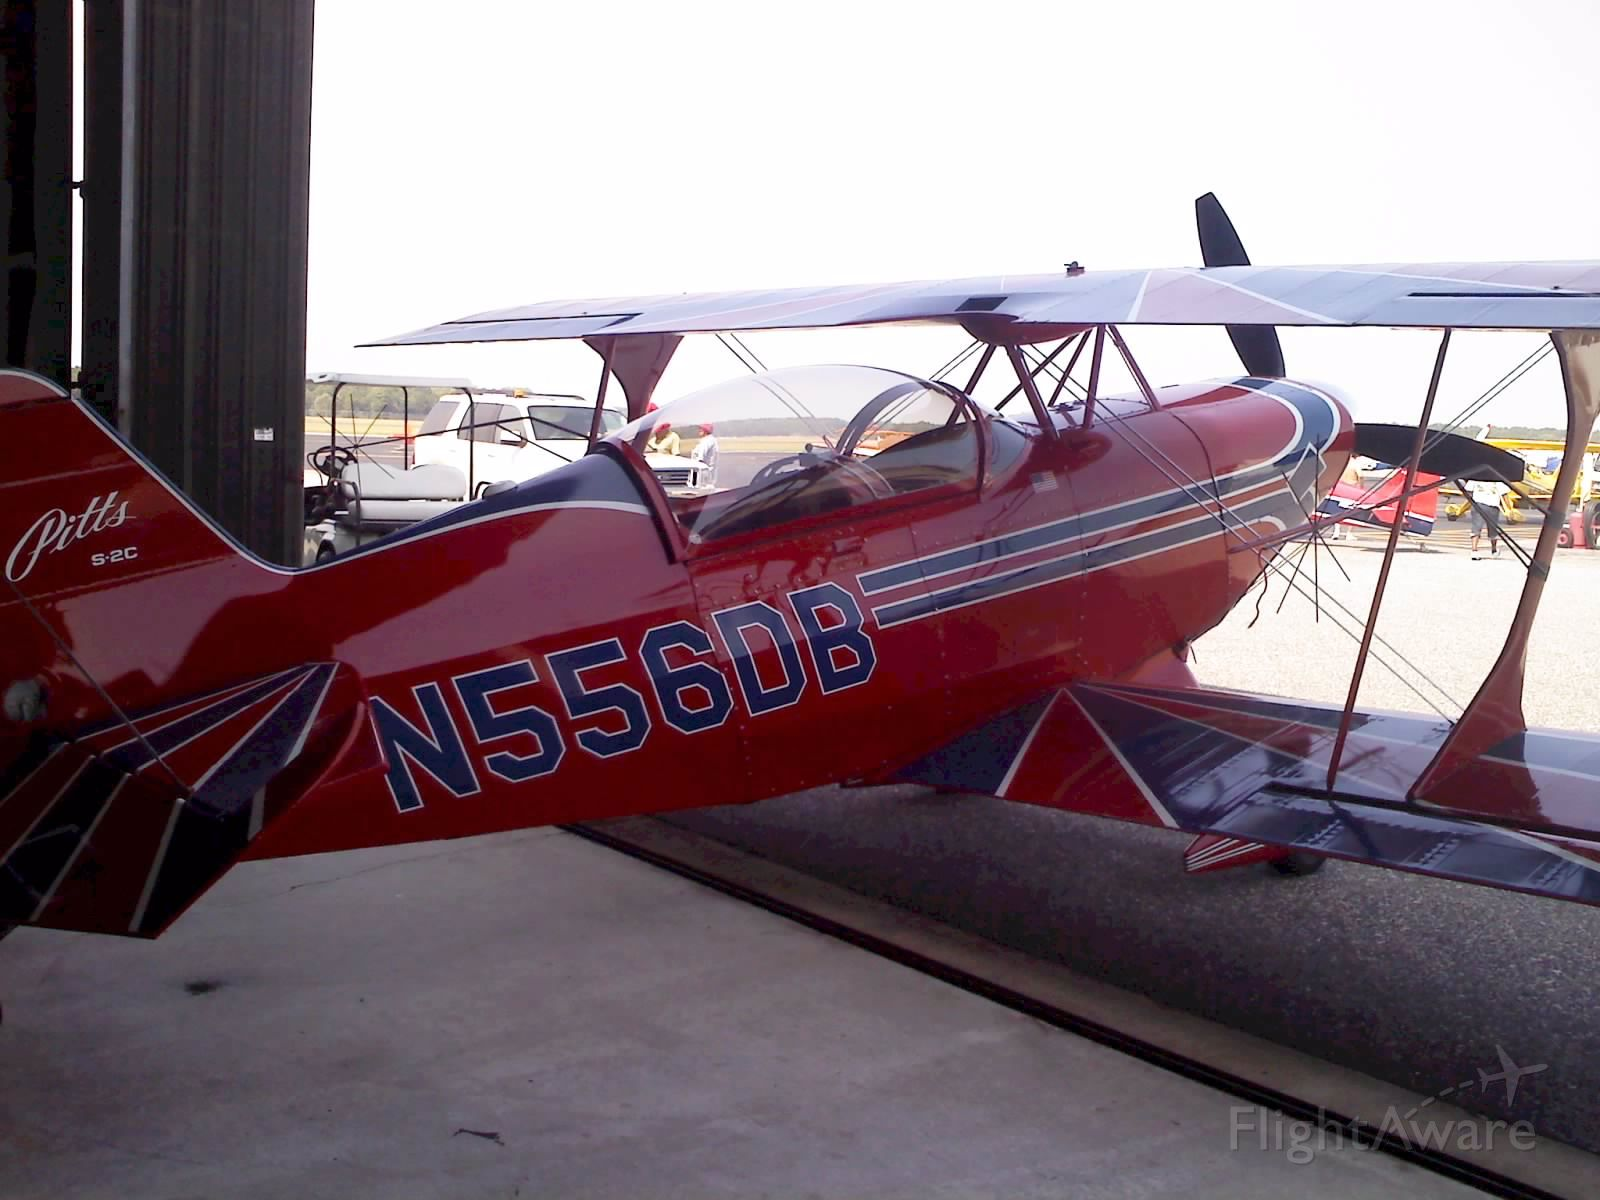 PITTS Special (S-2) (N556DB) - Nice aerobatic bird at WWD for training.